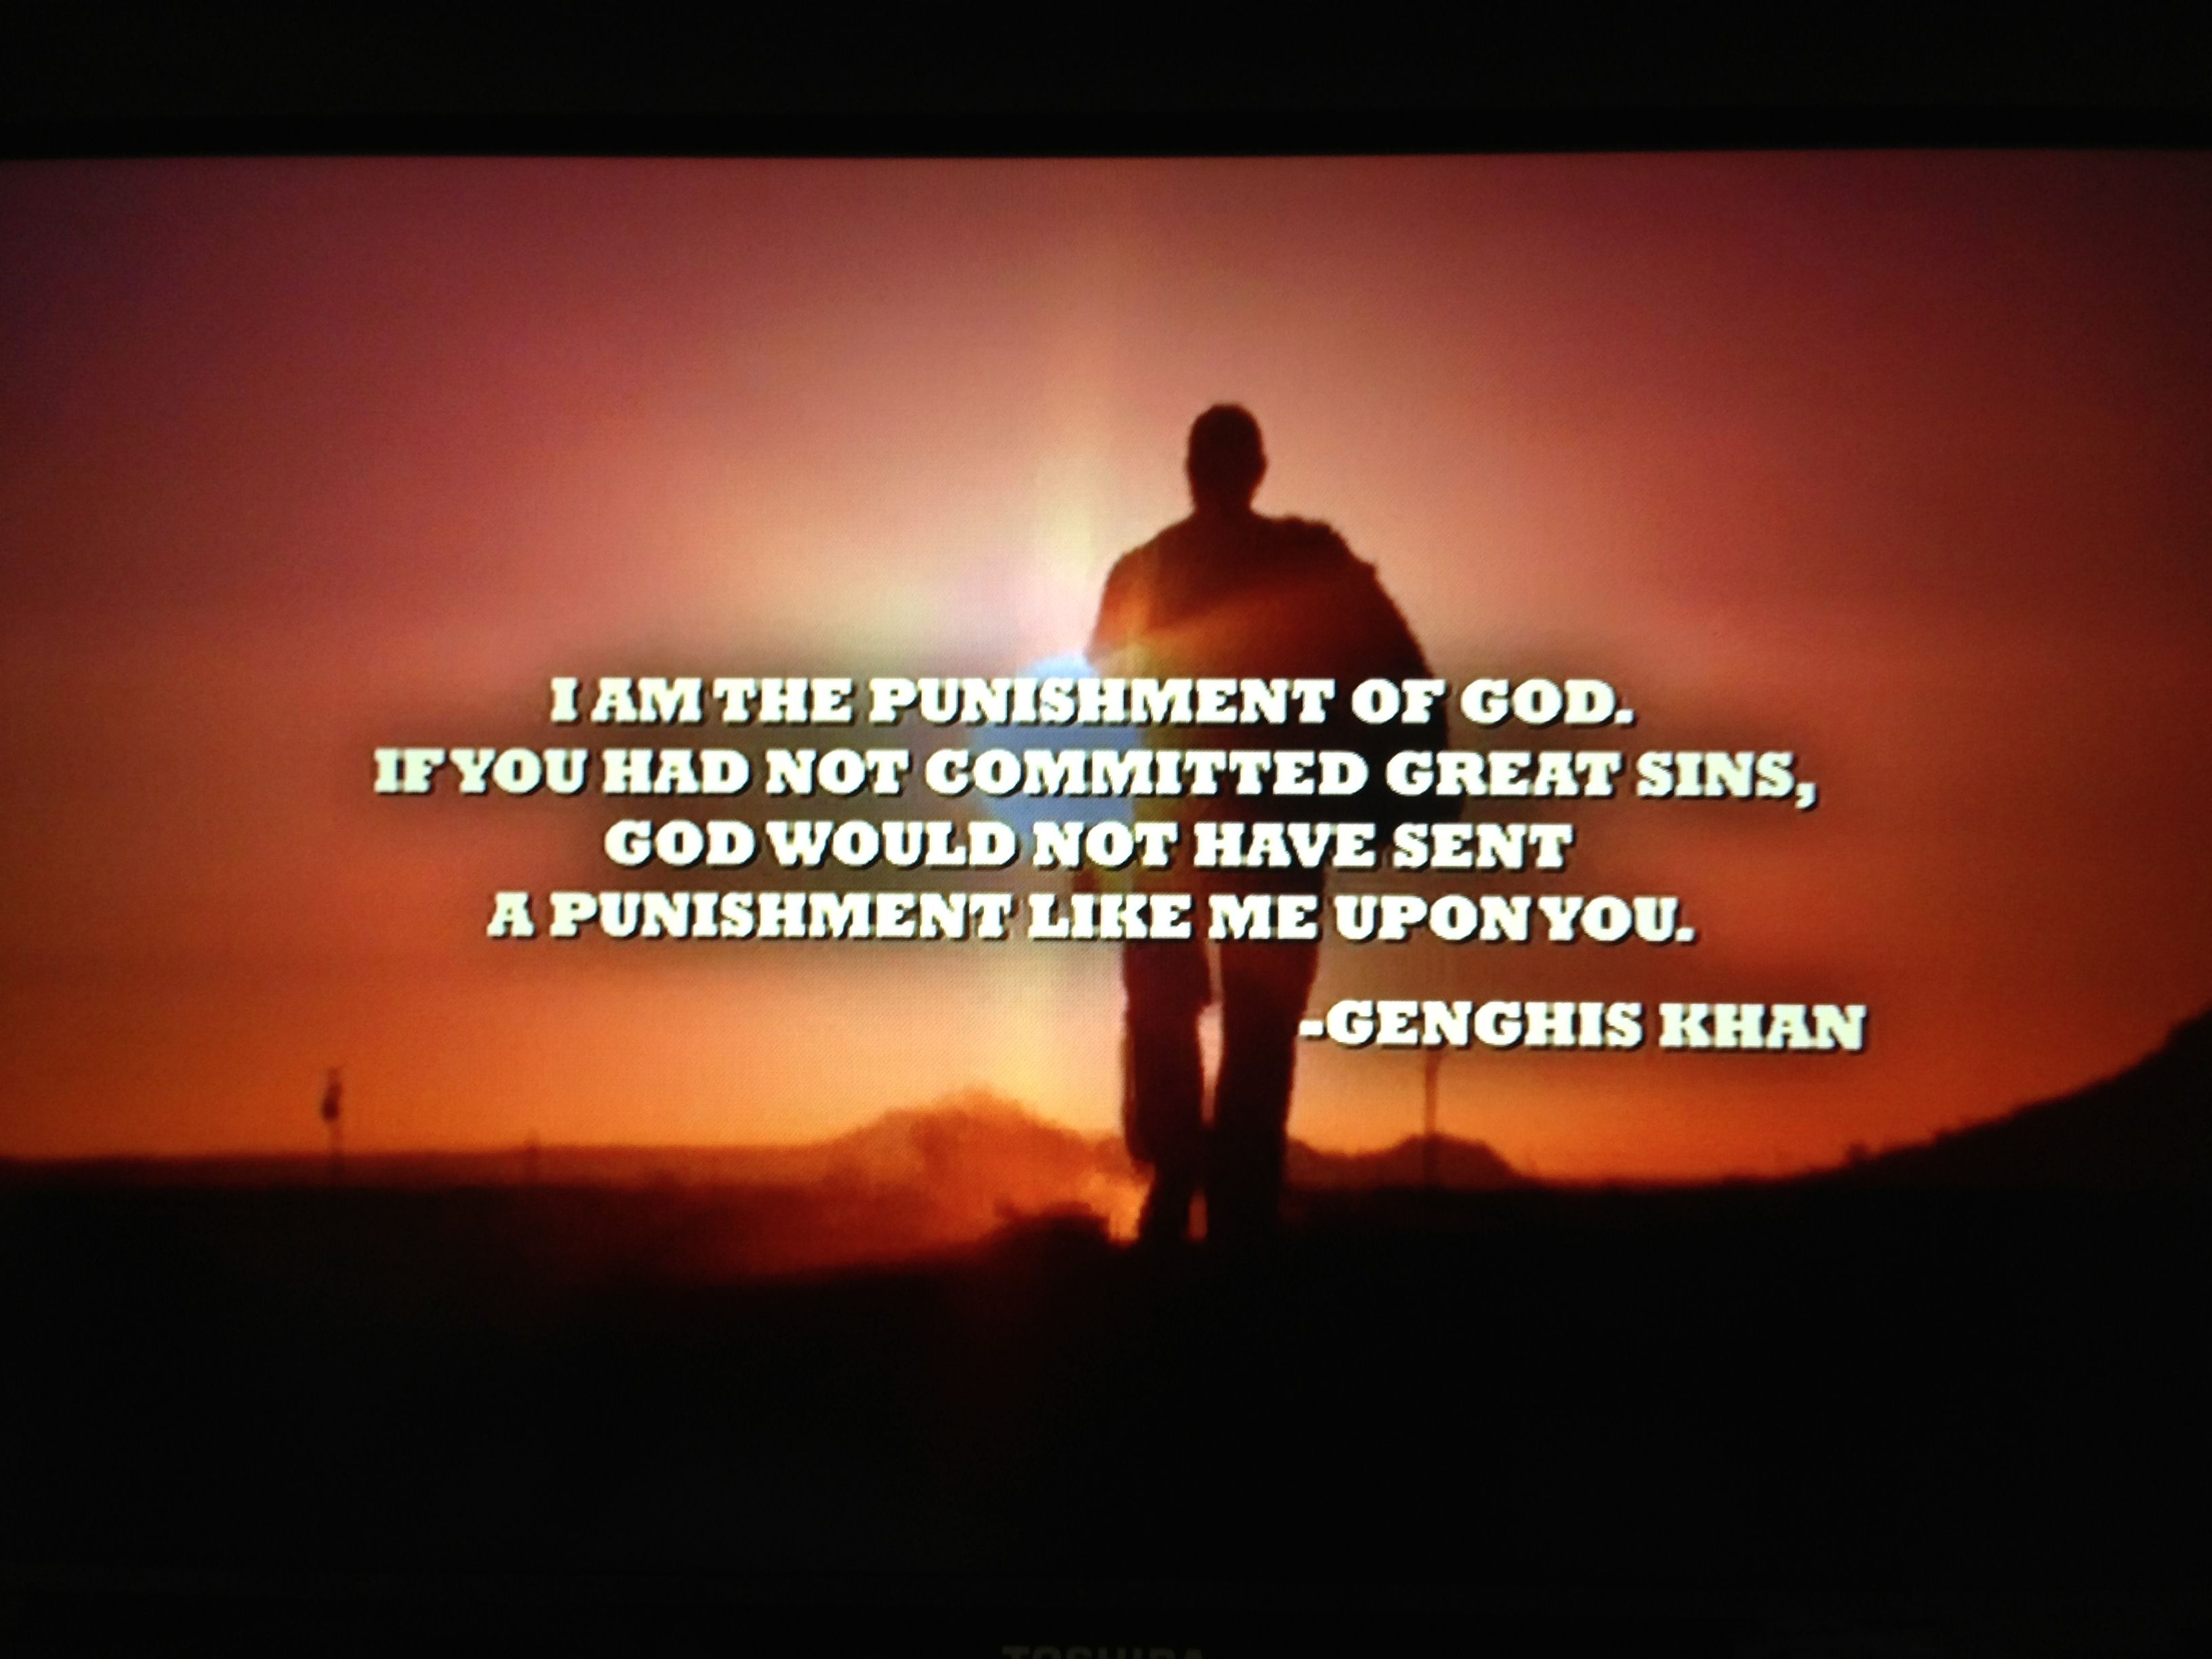 From BloodAndBone quote from Genghis Khan (your thoughts